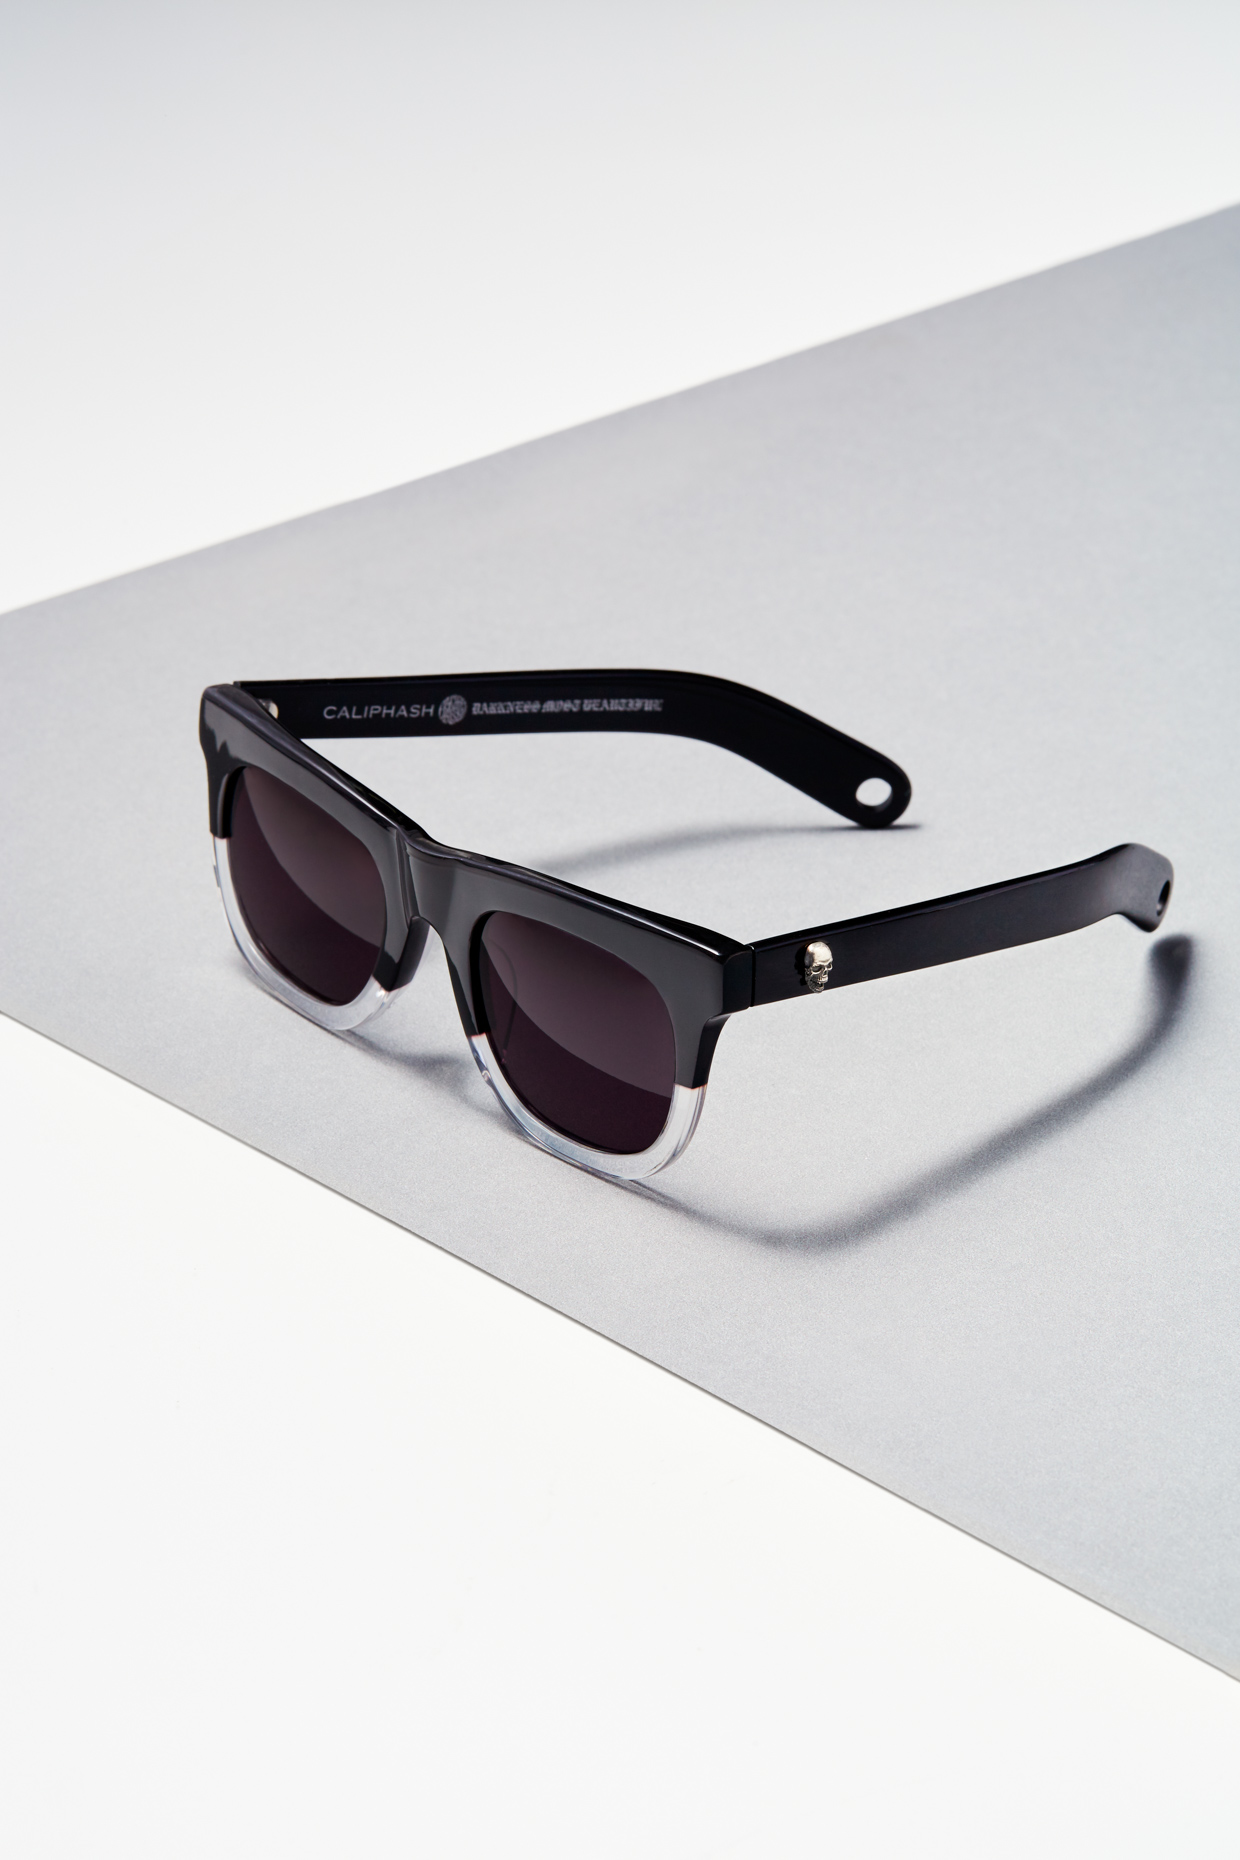 Caliphash Sunglasses